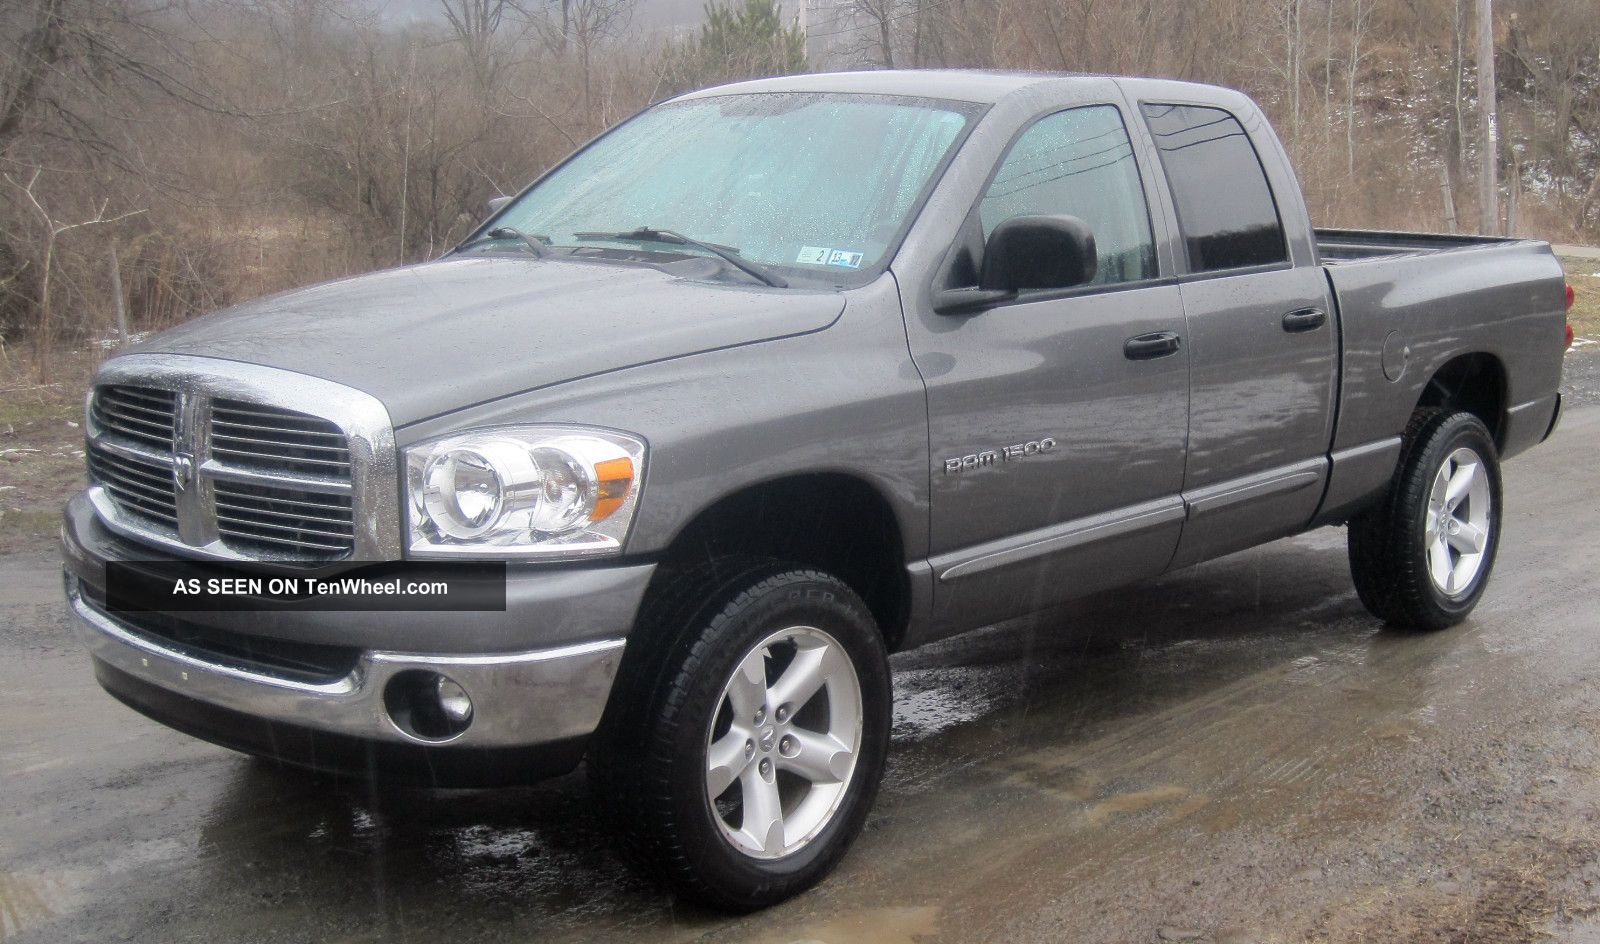 2007 Dodge Ram 1500 Slt Crew Cab Pickup 4 Door 4 7l